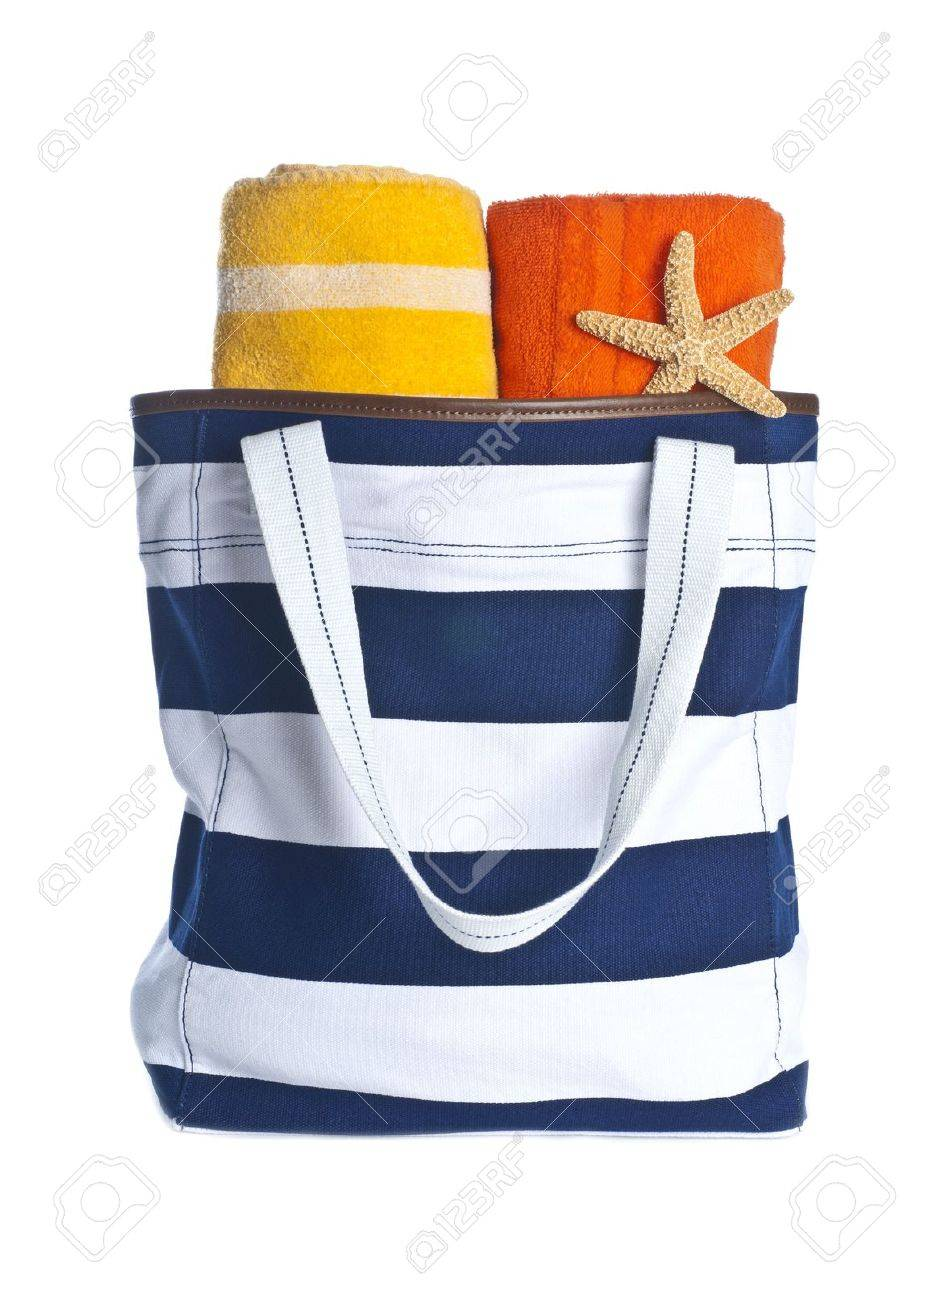 Beach Bag With Towels And Starfish Isolated On White Stock Photo ...